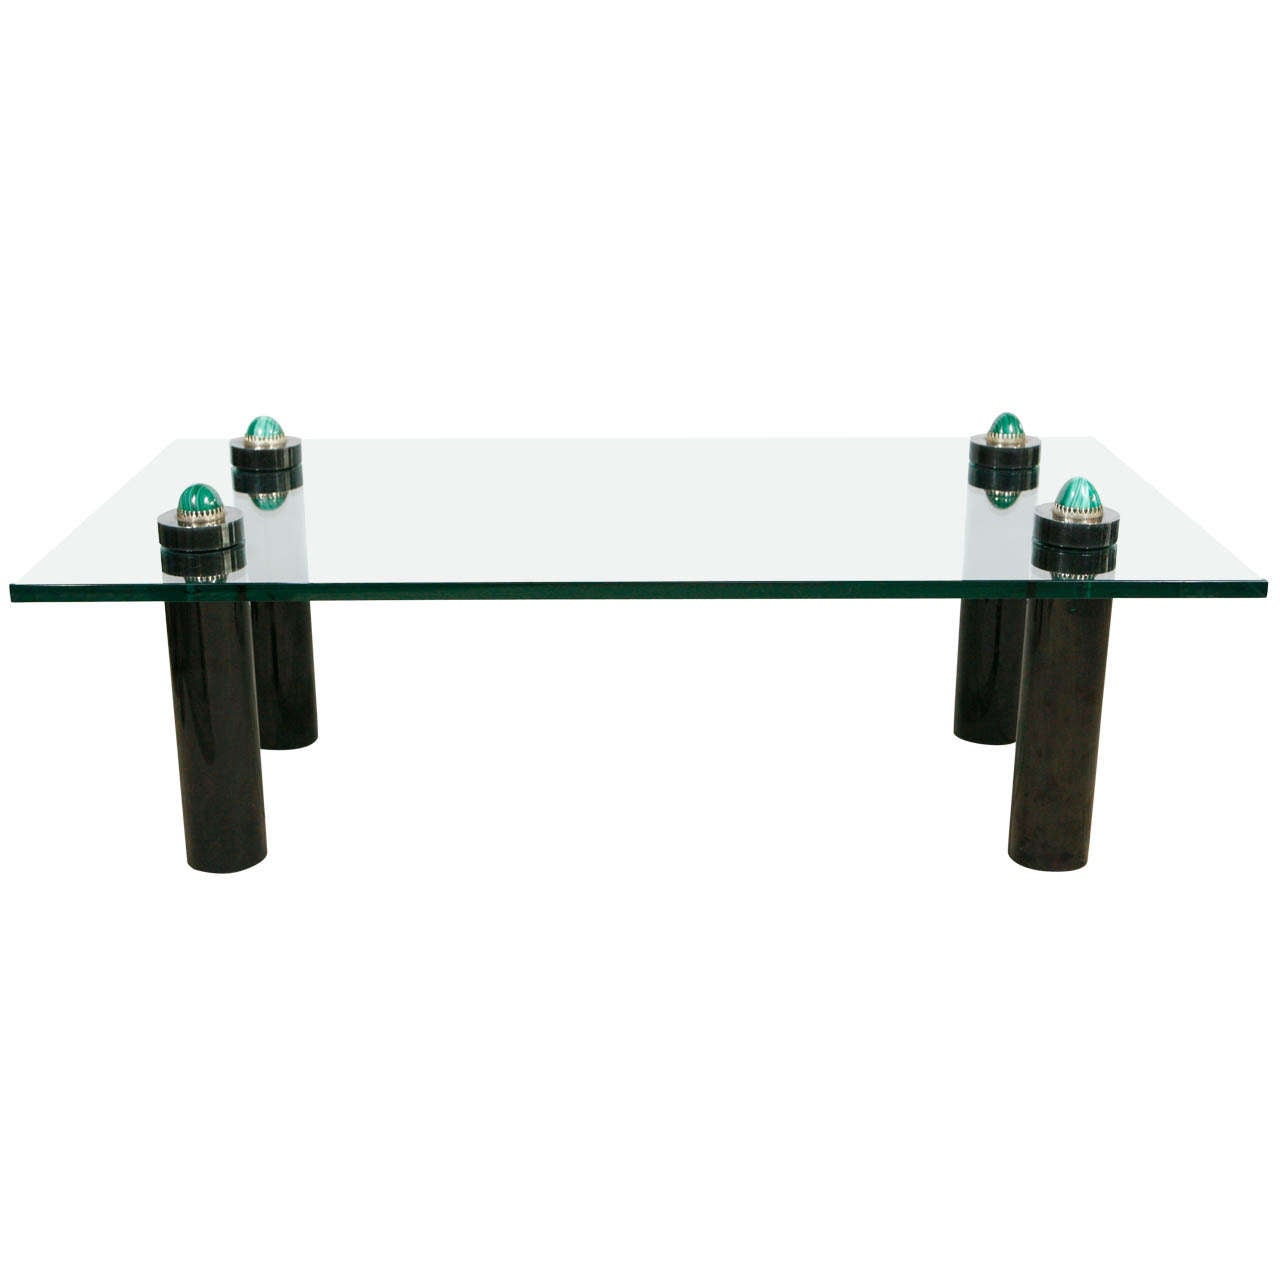 Anthony Redmile coffee table For Sale at 1stdibs